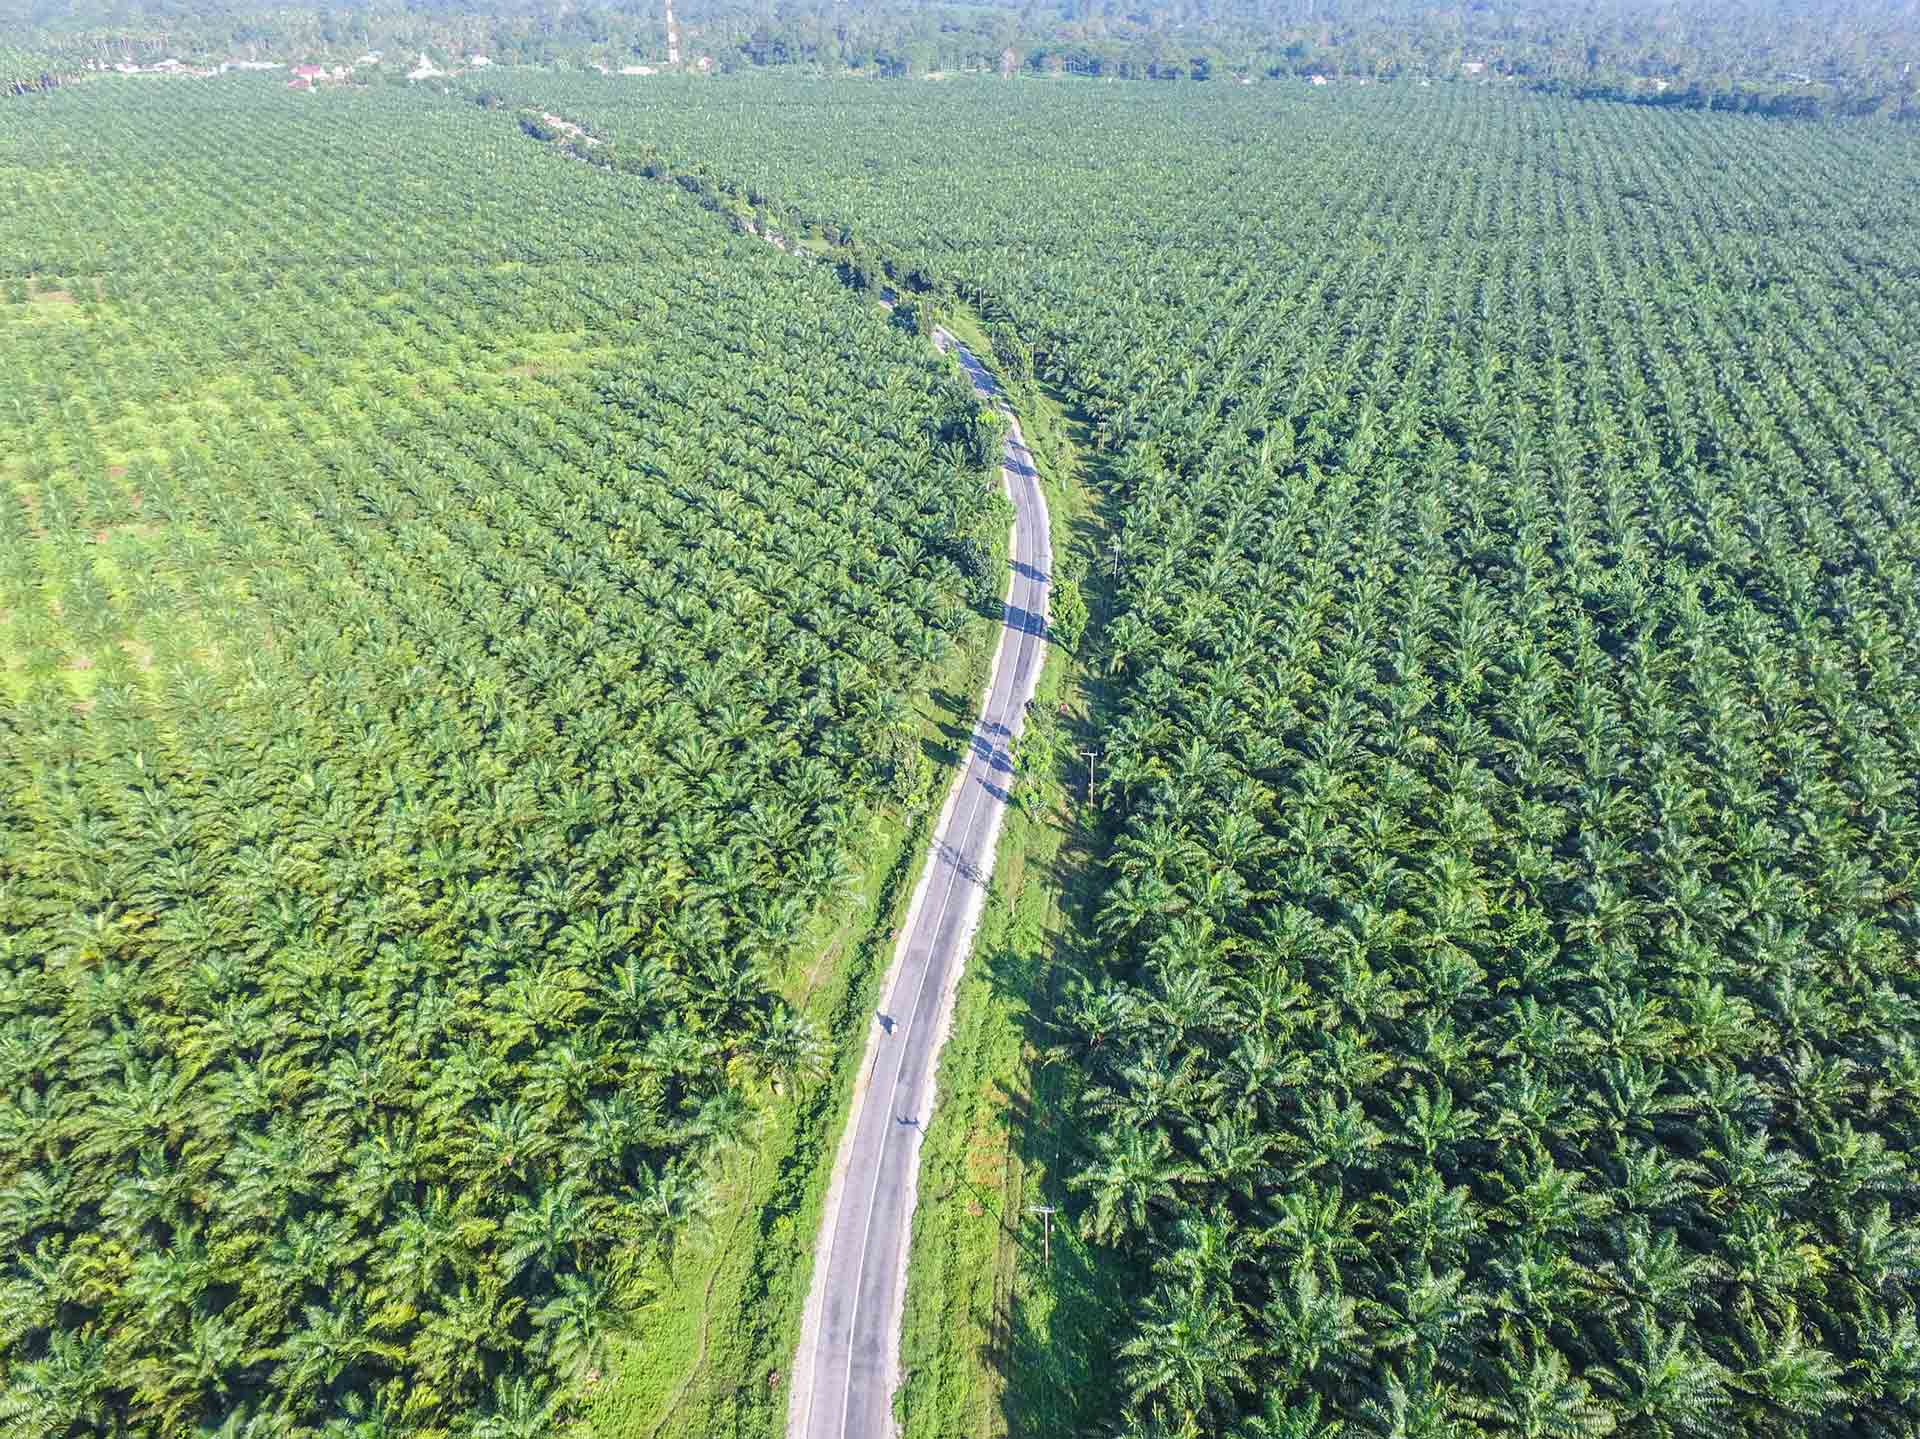 An overhead view of a large oil palm farm.